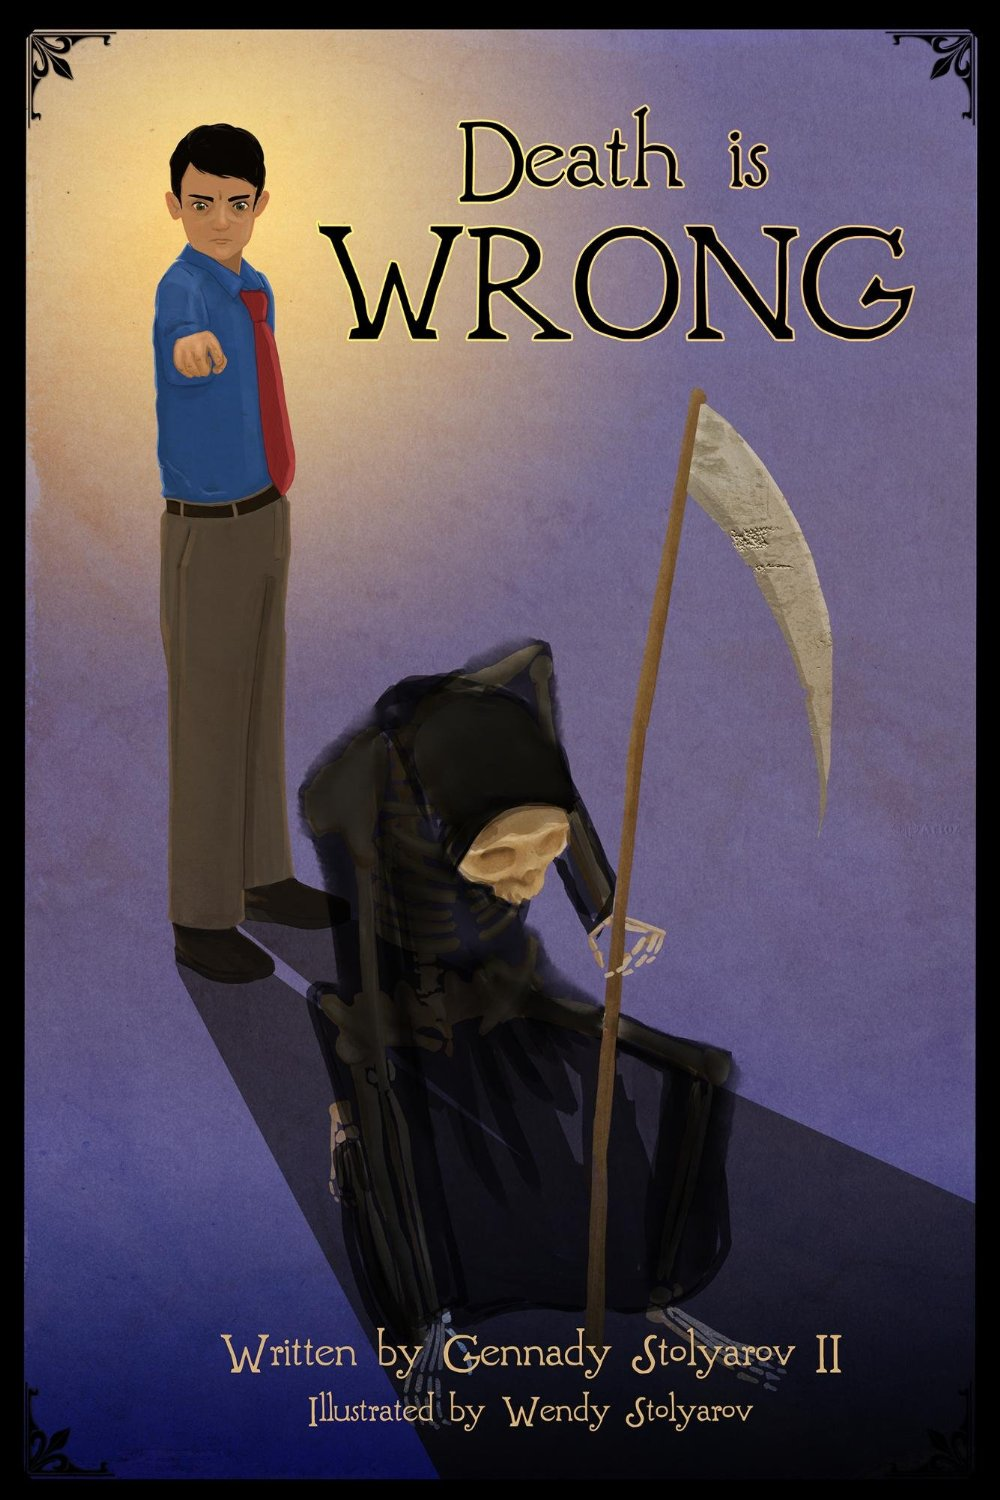 Death is Wrong - by Gennady Stolyarov II, Illustrated by Wendy Stolyarov